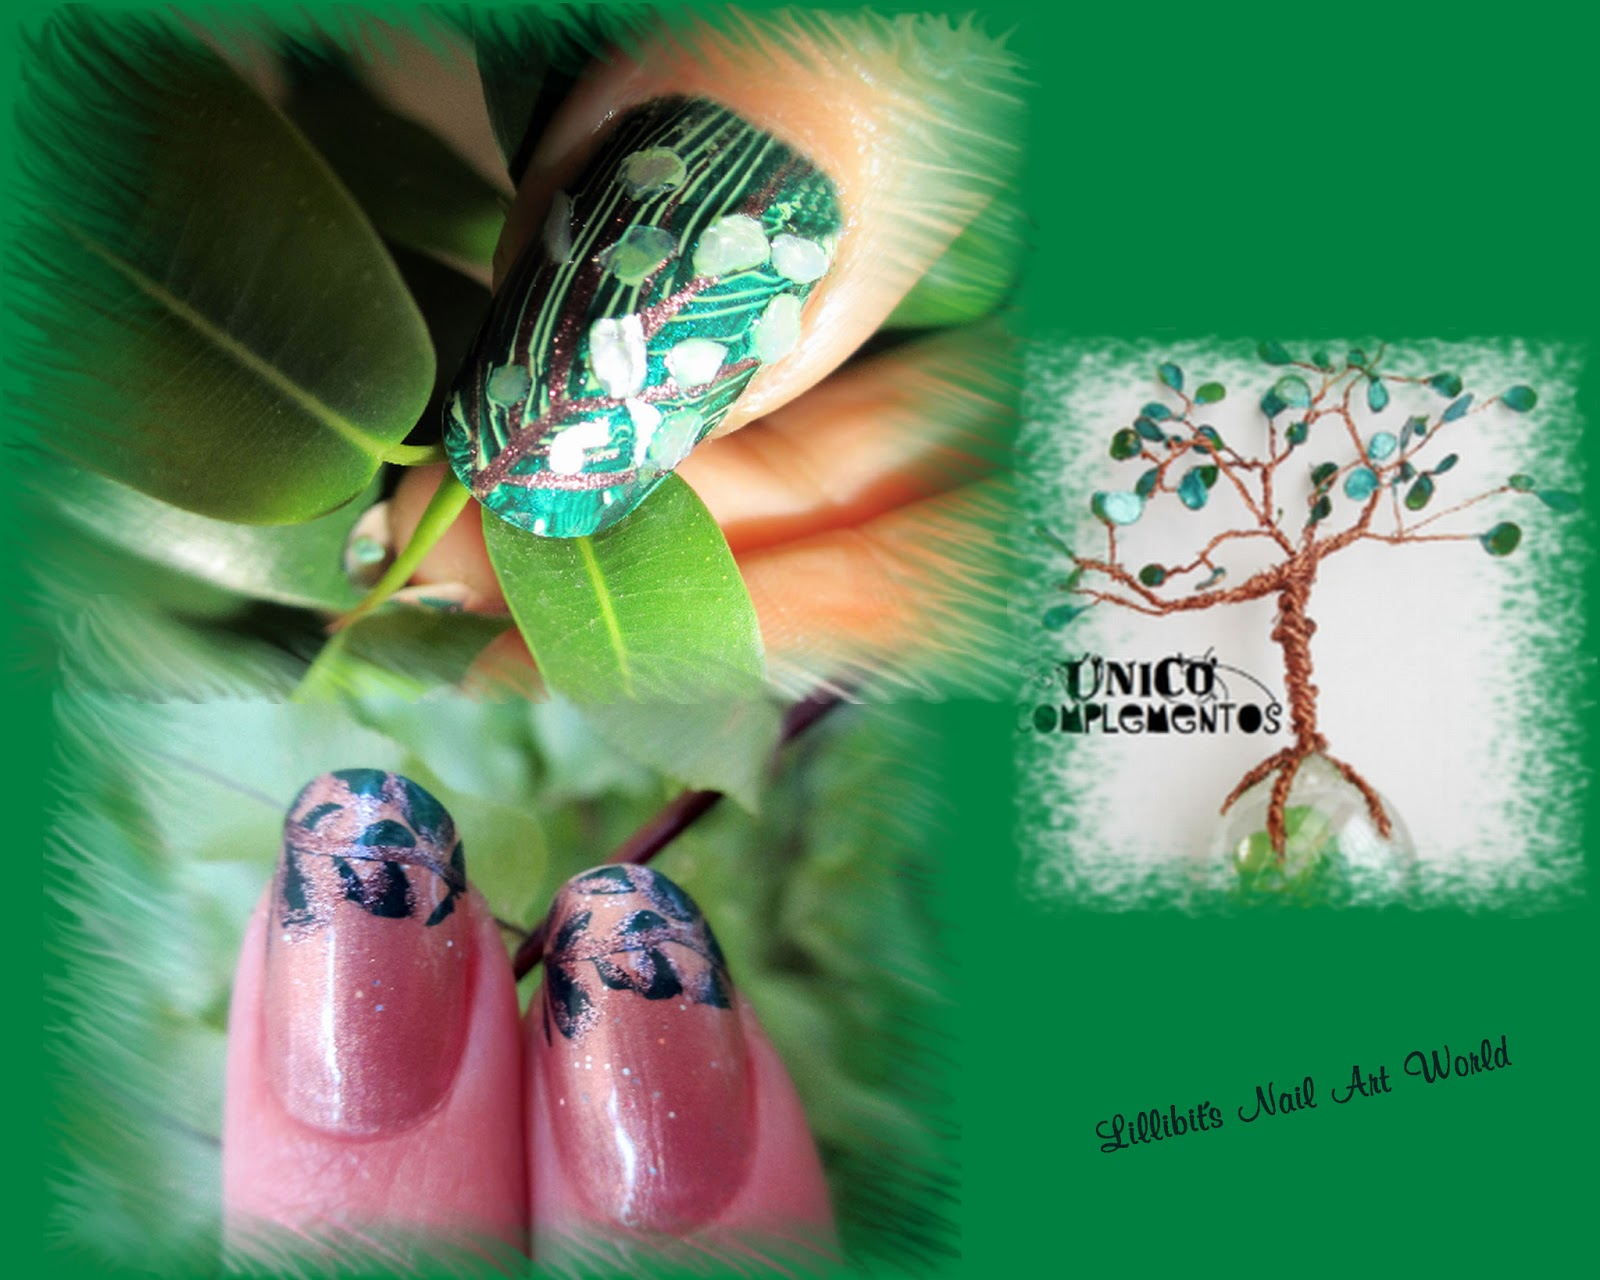 Lillibit´s Nail Art World: Árbol UC